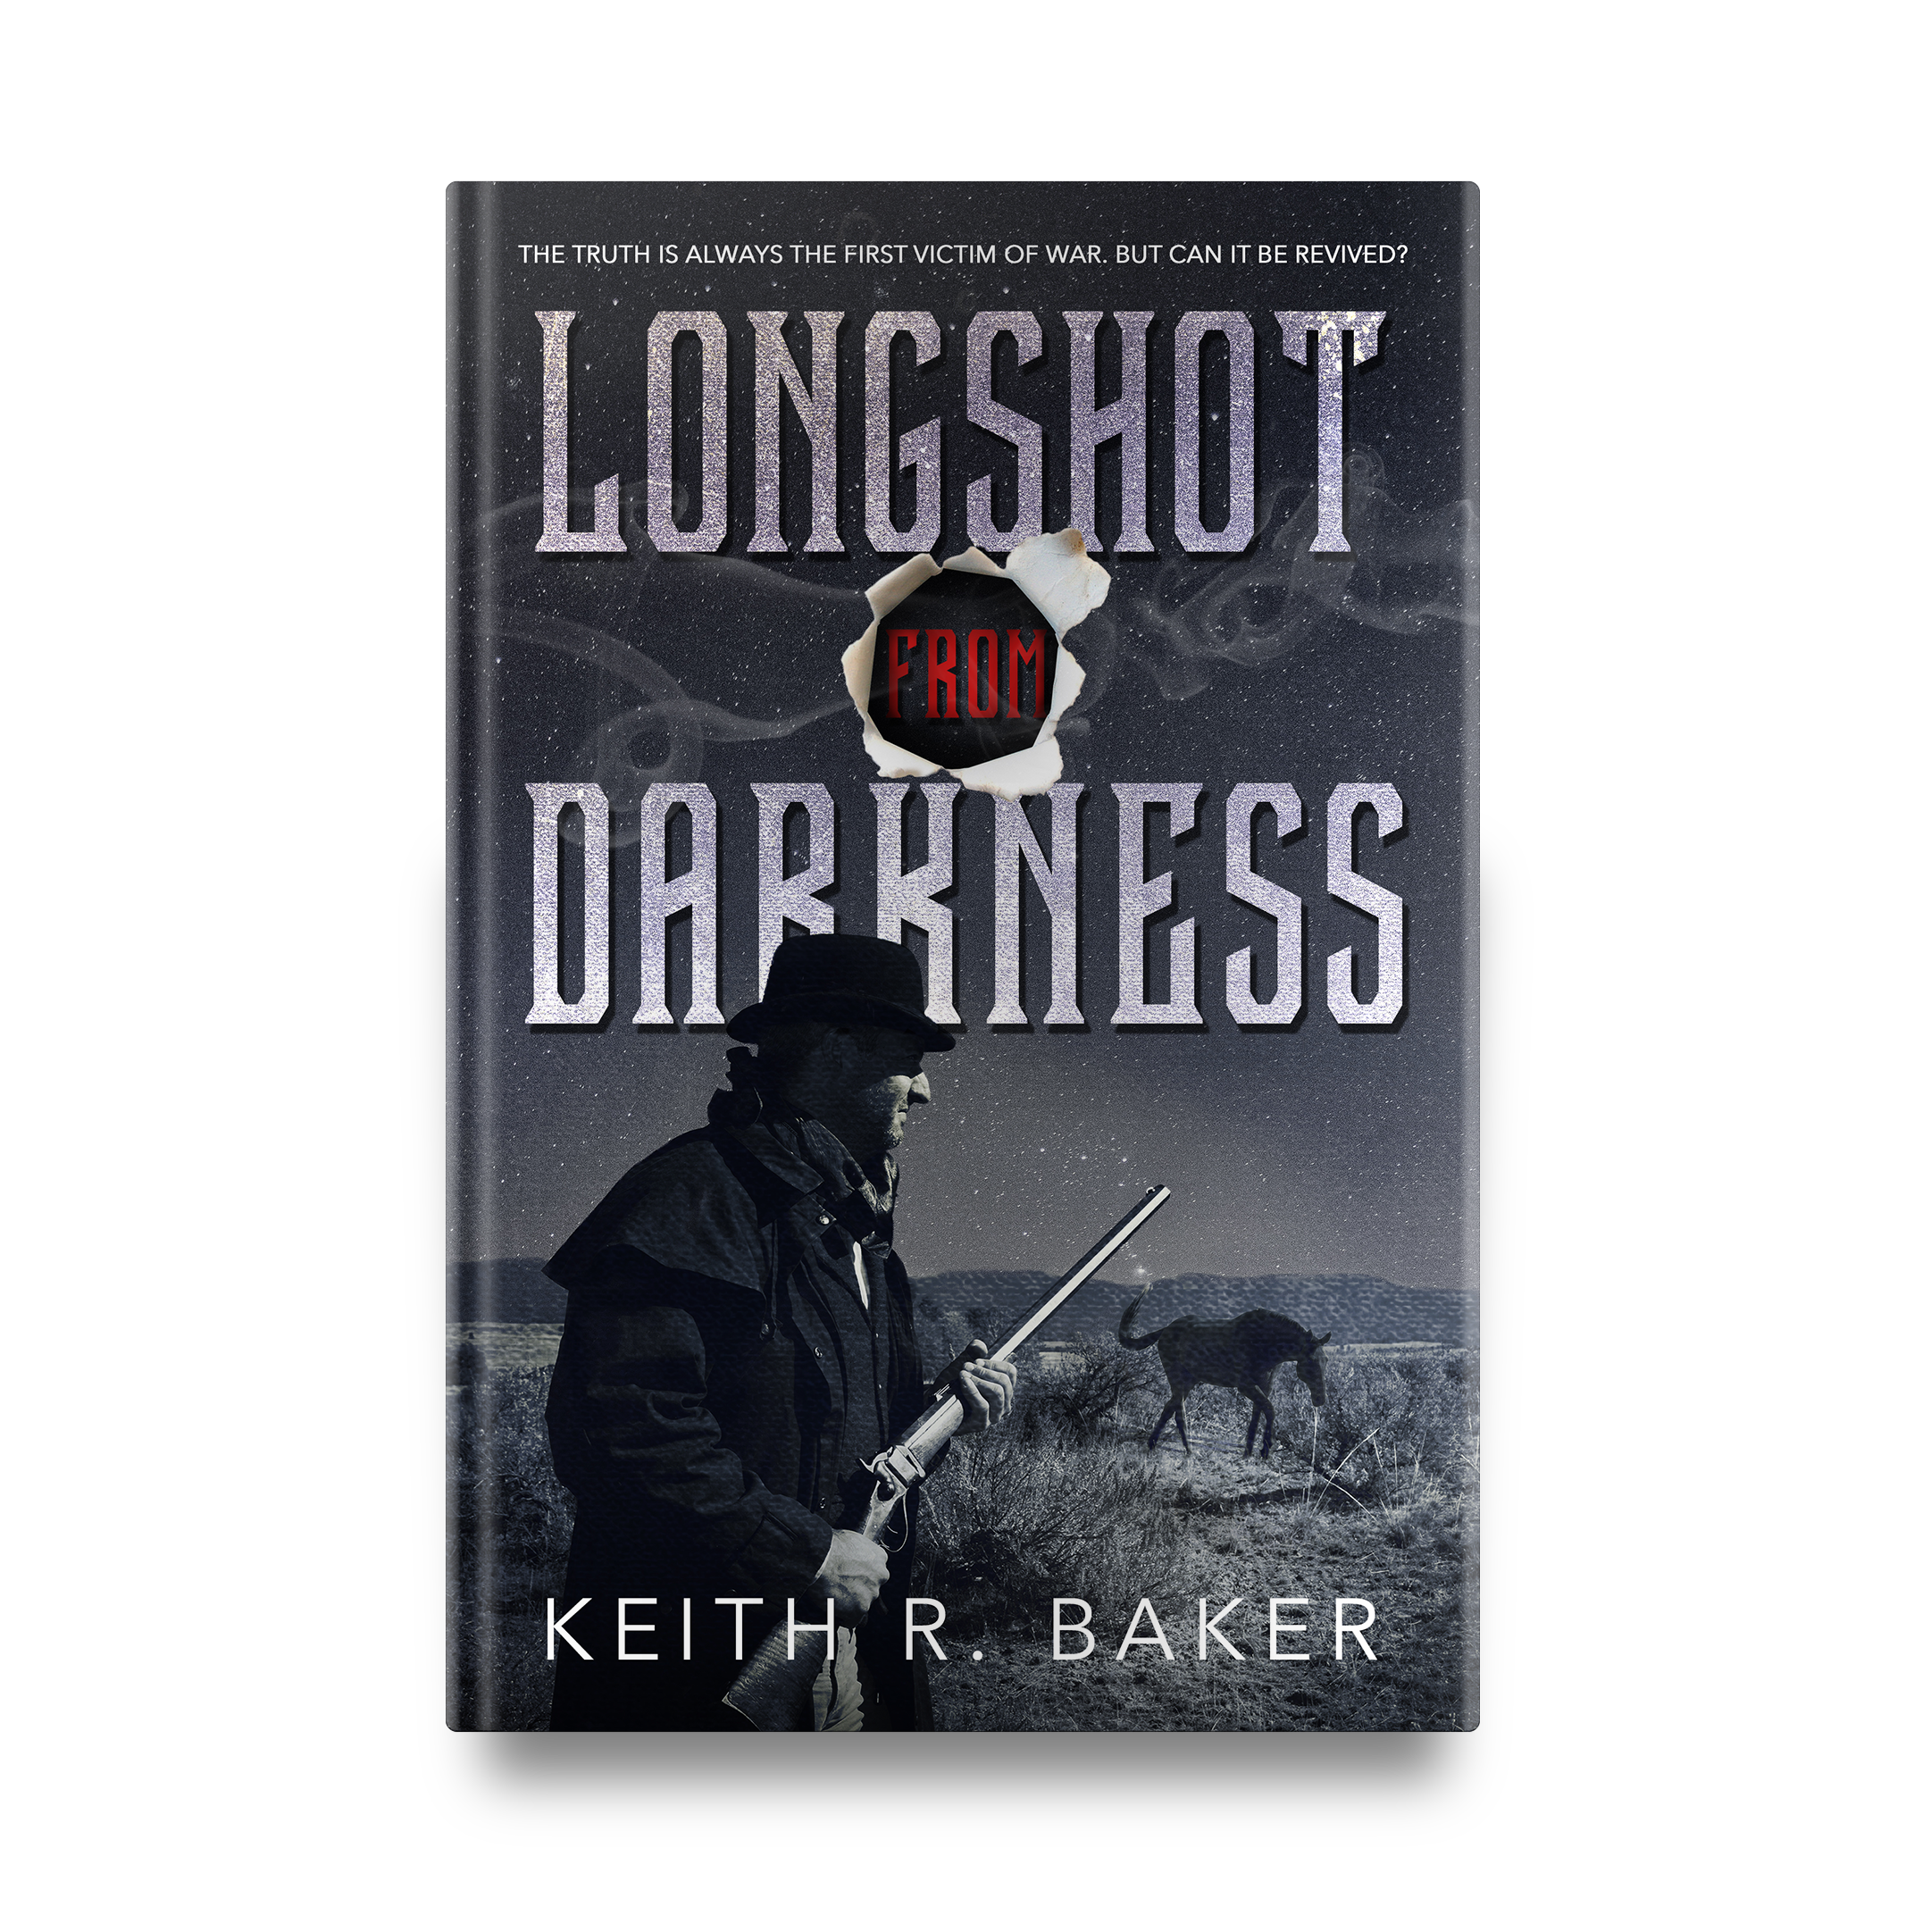 Keith R. Baker's Longshot From Darkness || Designed by TheThatchery.com